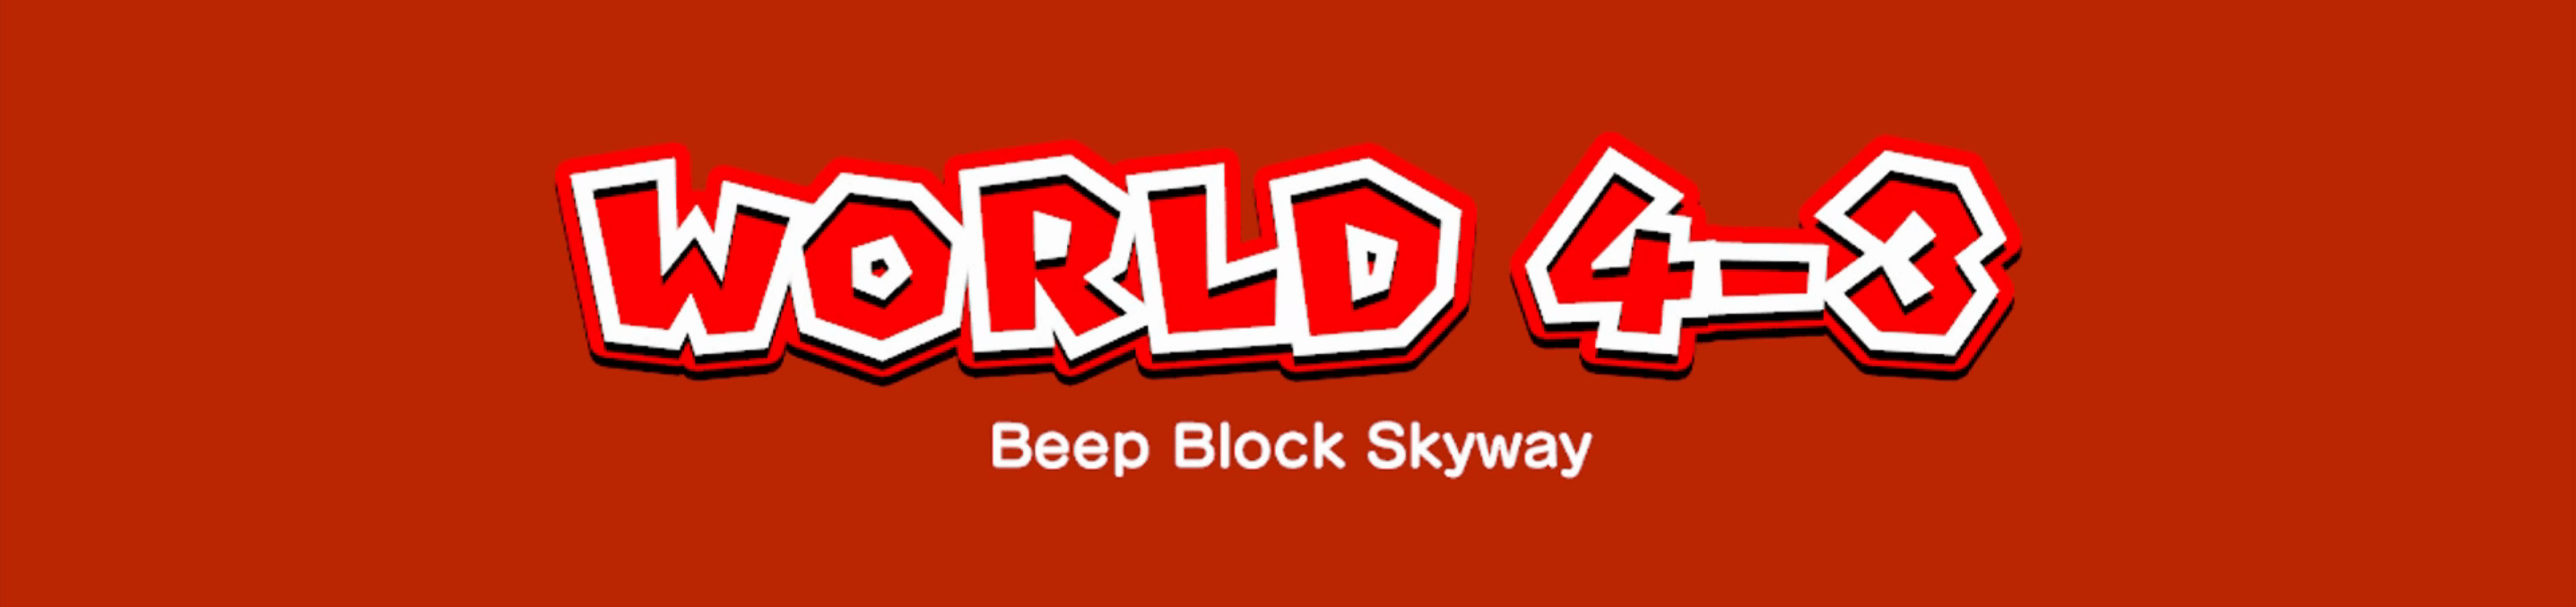 The intro screen for Beep Block Skyway.